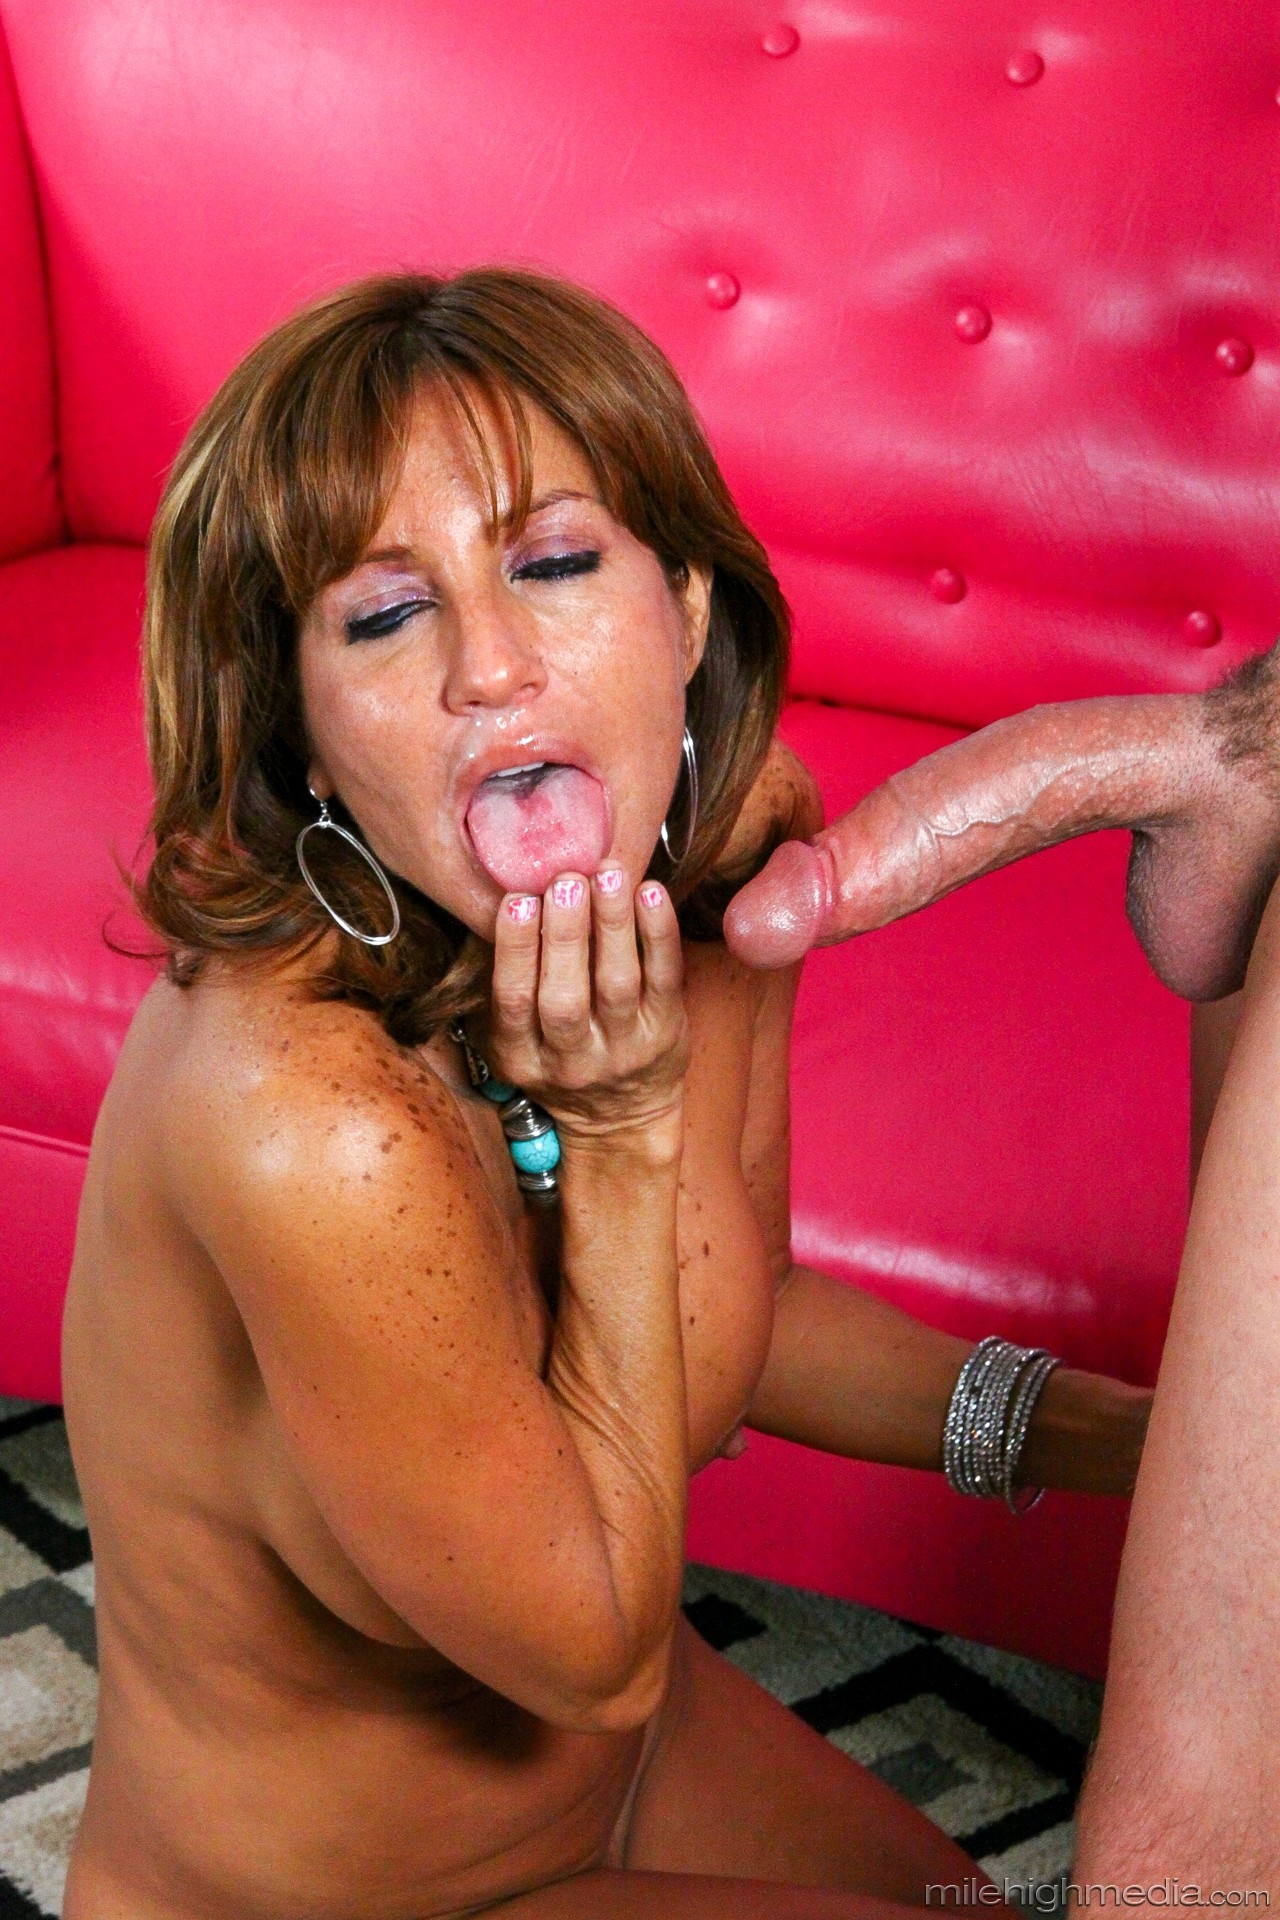 Tara Holiday - 1St Time Mother Fuckers 02 78234-3179